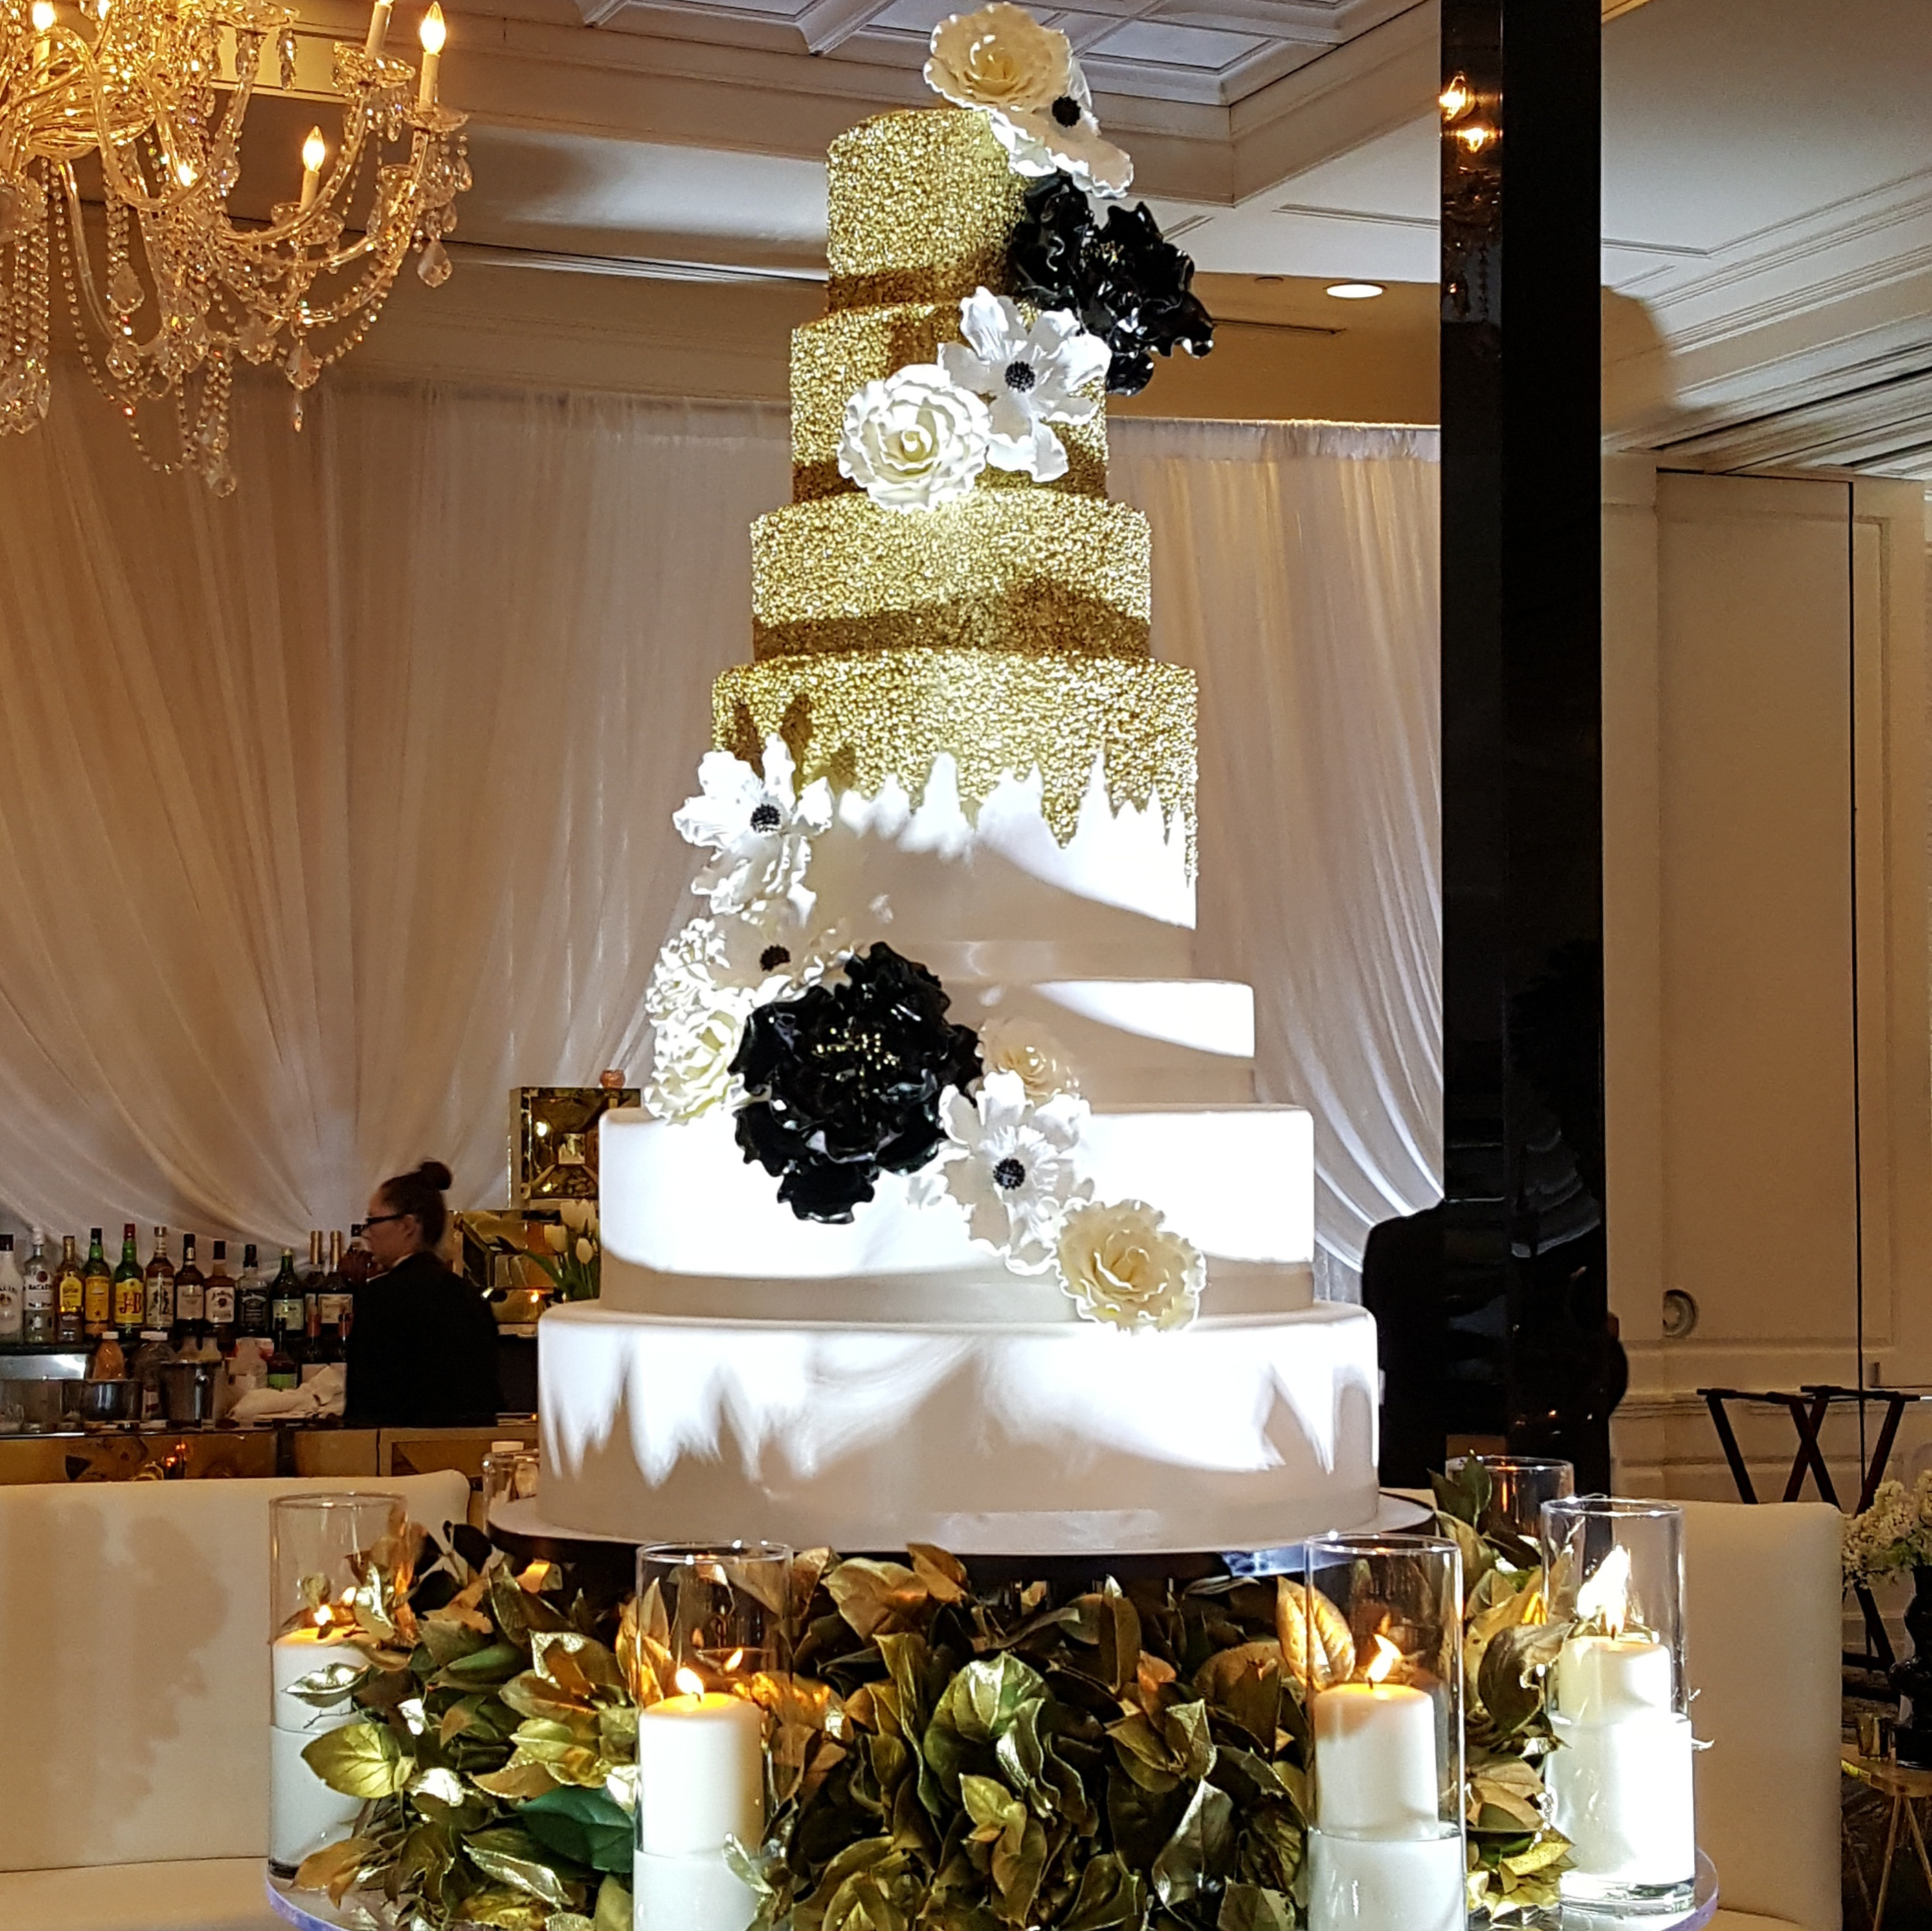 White wedding cake with gold sparkle and black and white sugar flowers